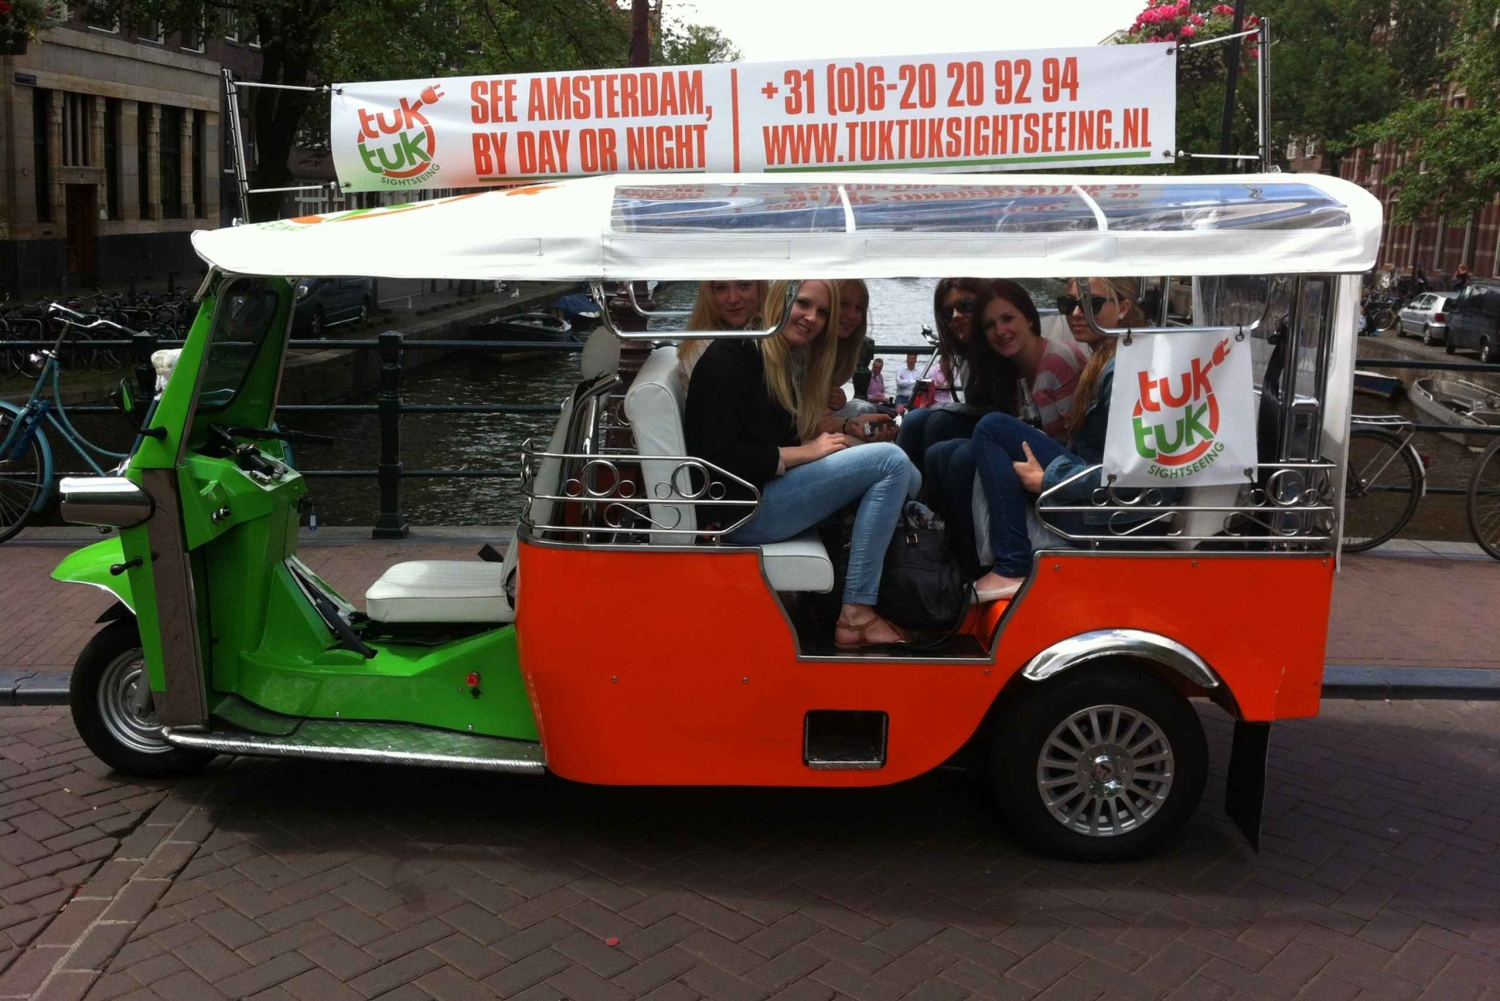 1-Hour Tuk Tuk City Sightseeing Tour